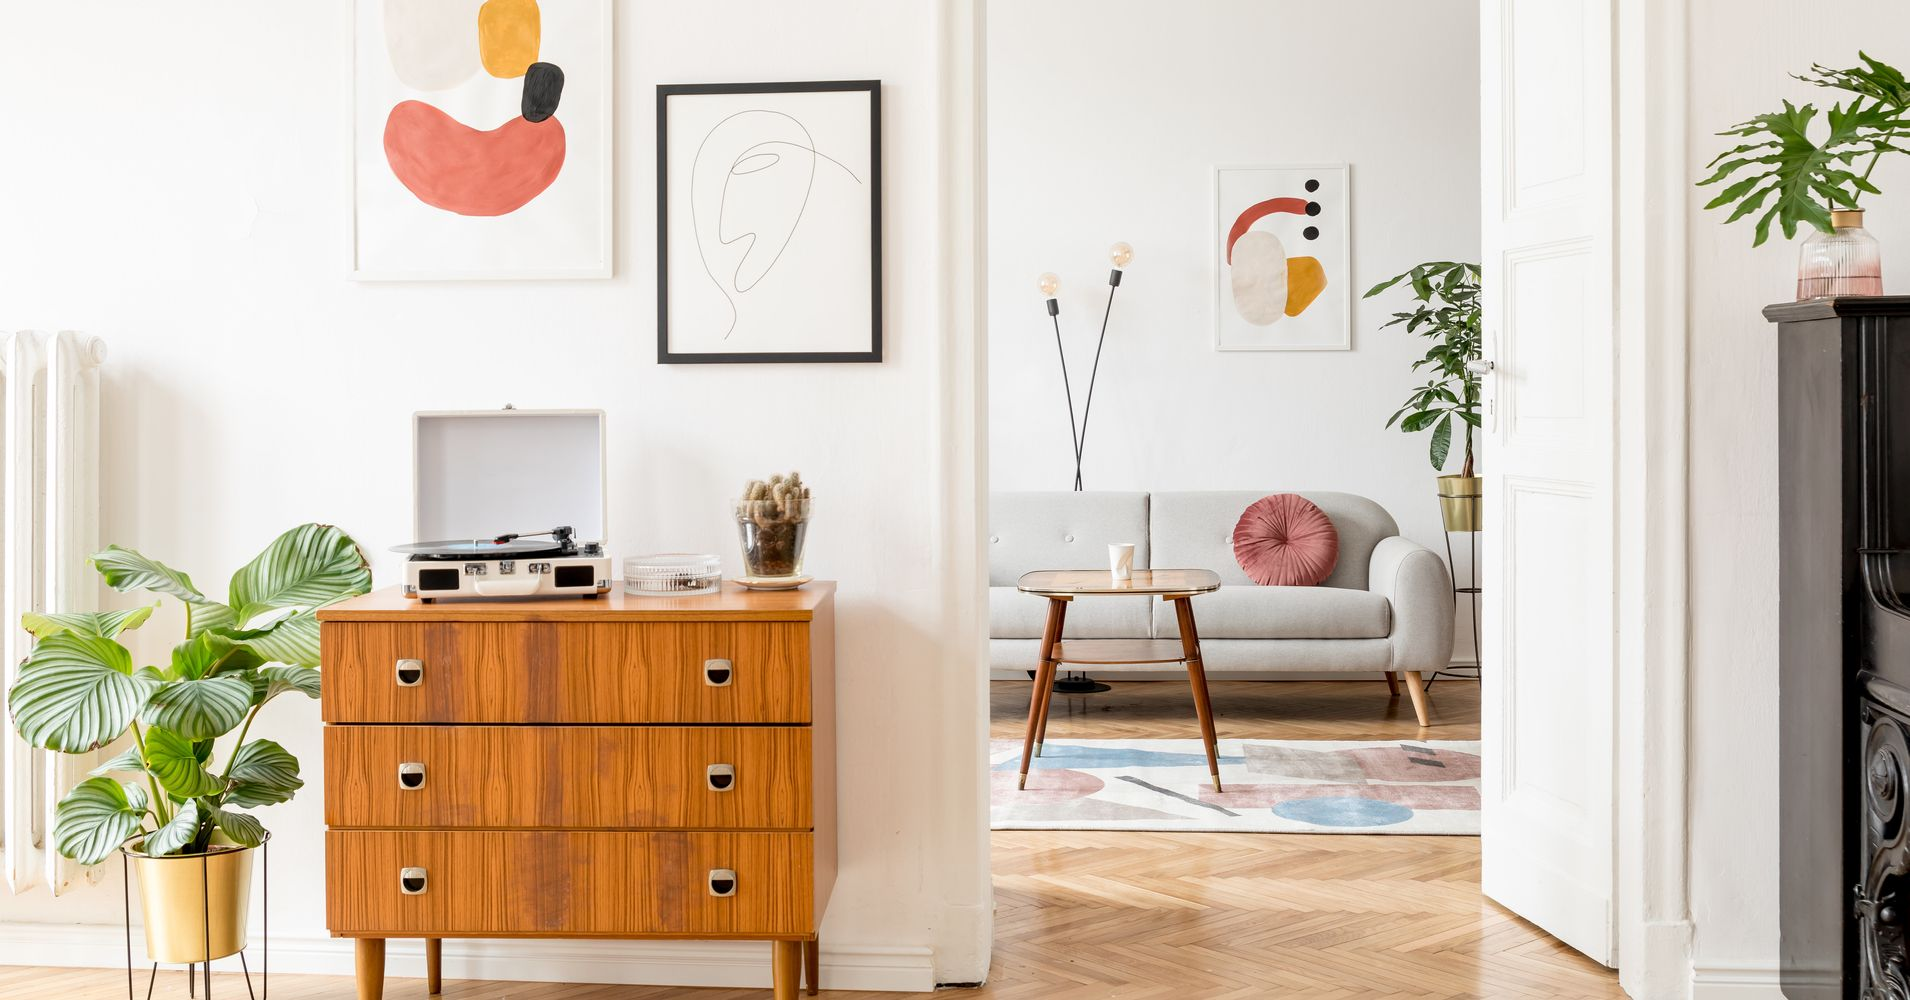 14 Furniture S Like West Elm To Mid Century Modern Home Decor Huffpost Life